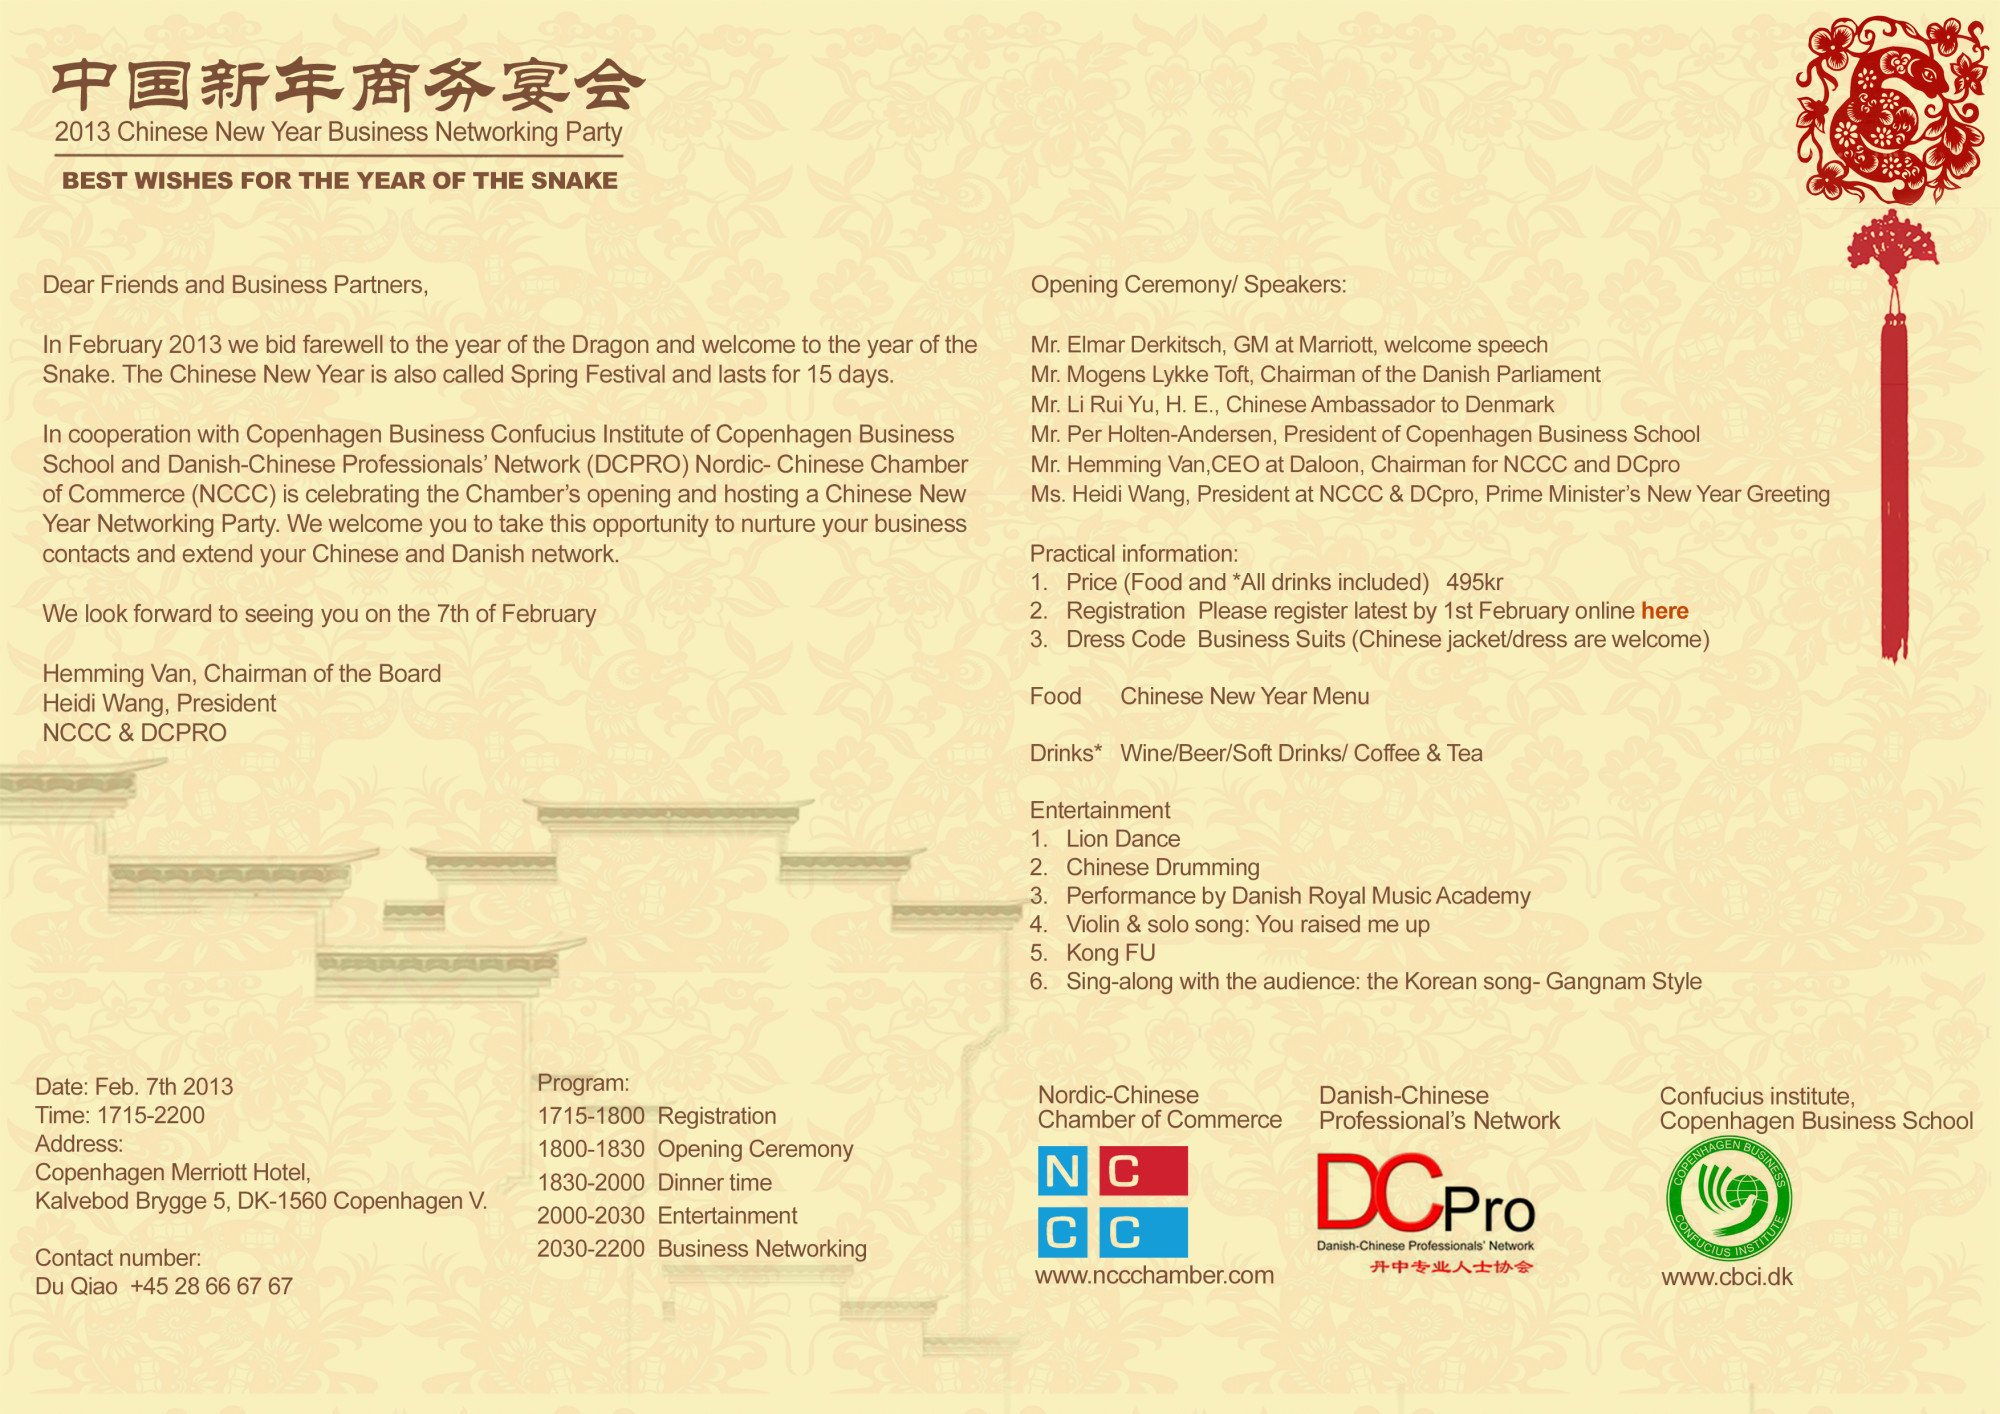 invitation registration 2013 chinese new year business networking party